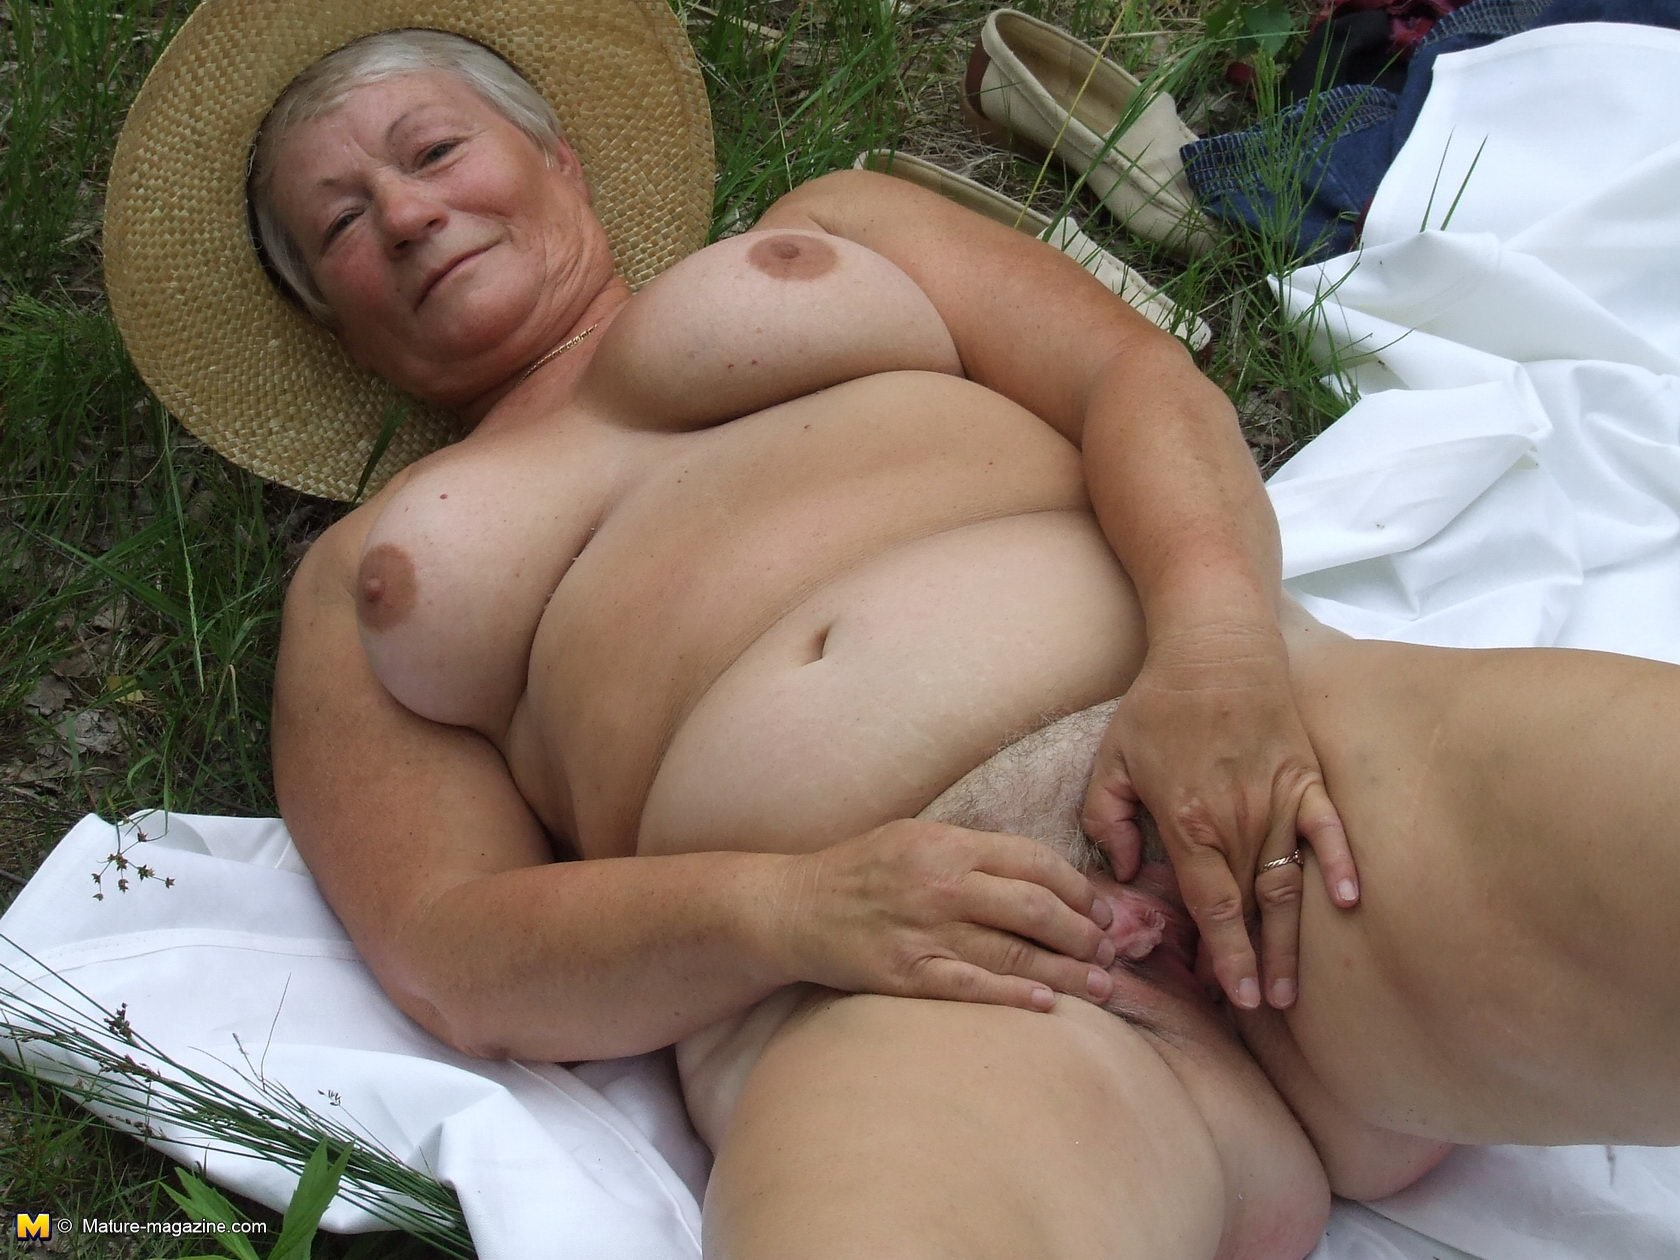 All black granny porn #6